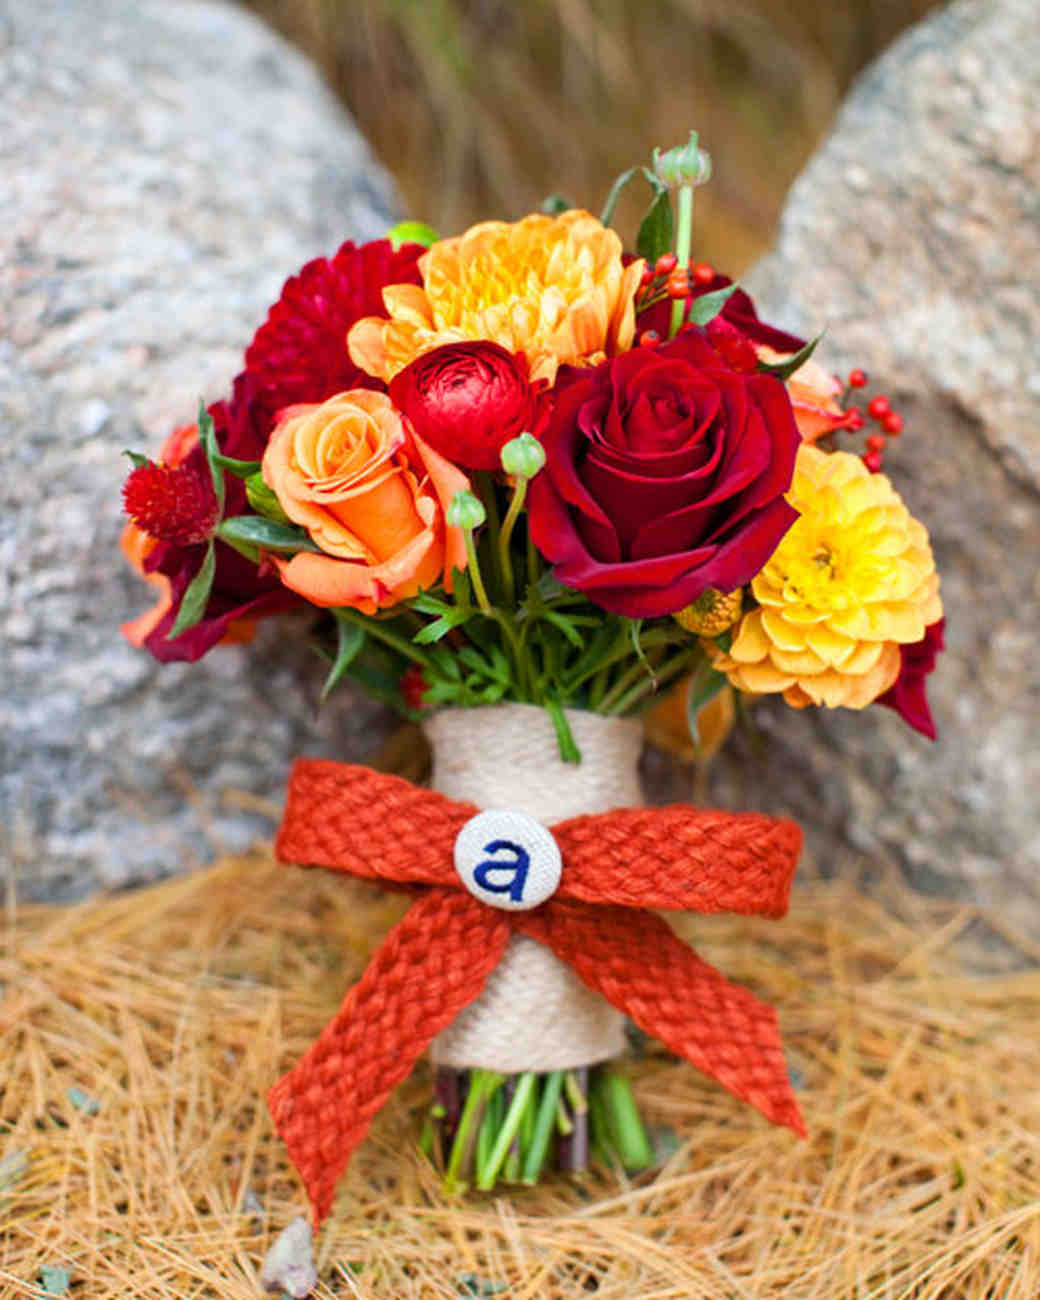 Red, Orange, and Yellow Nosegay Bouquet with Monogrammed Bow